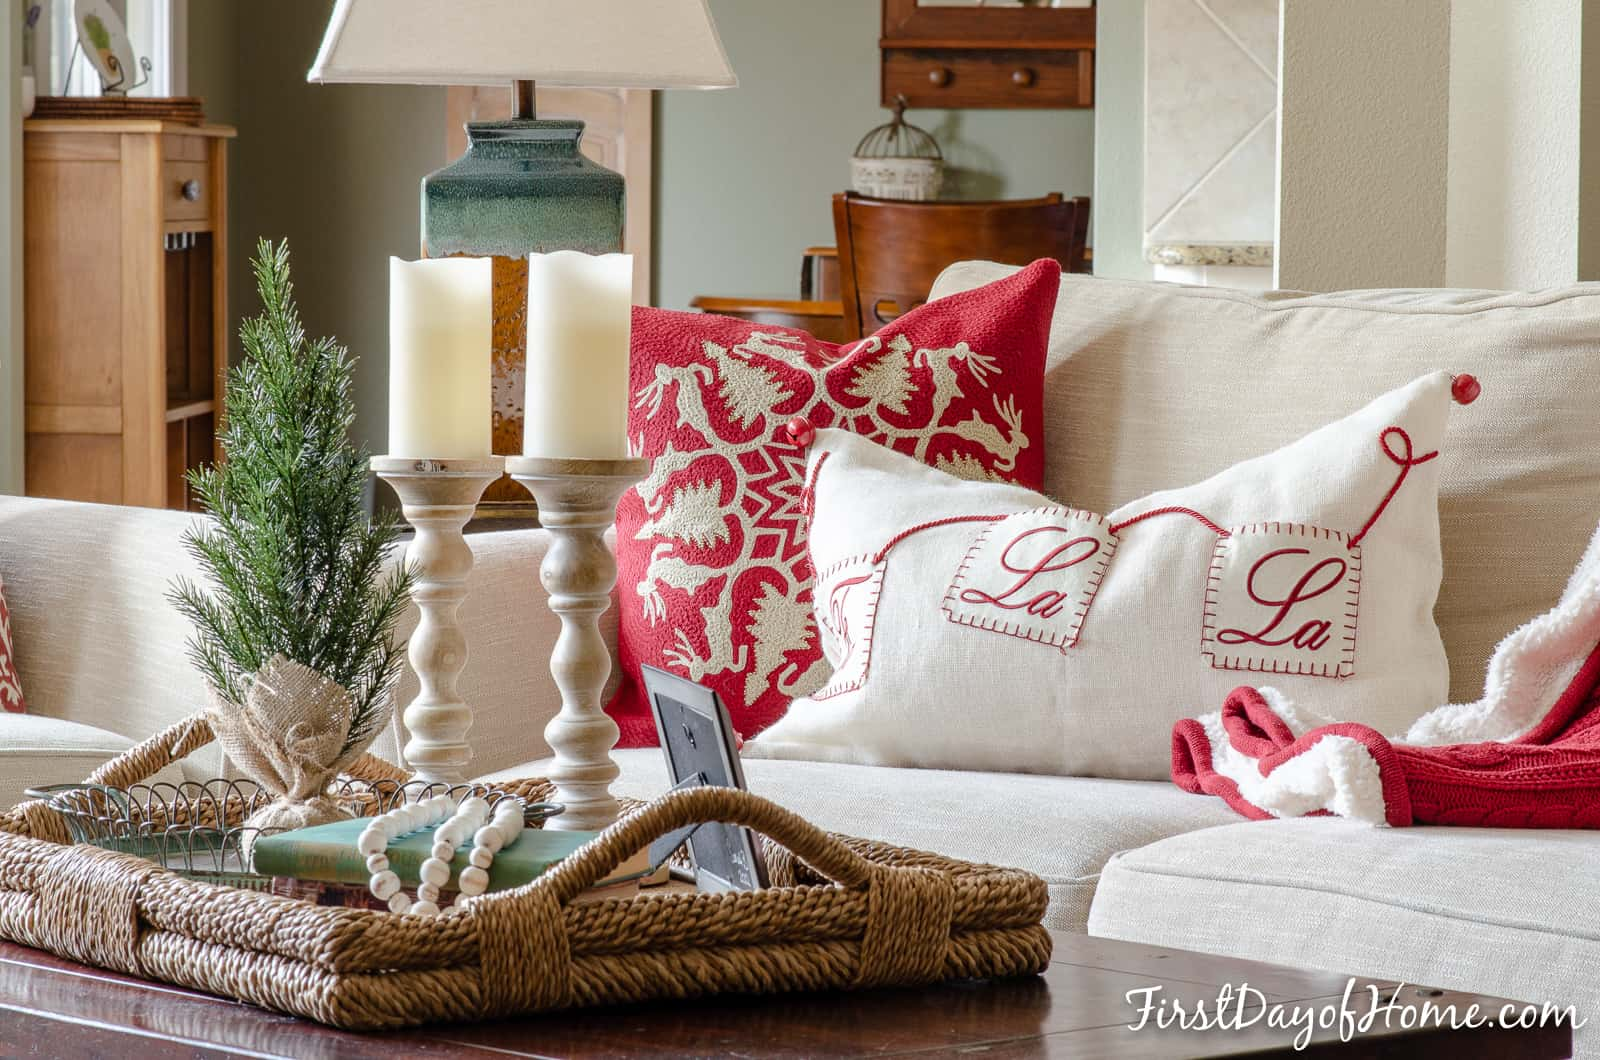 Living room sofa with Christmas throw pillows in red and white